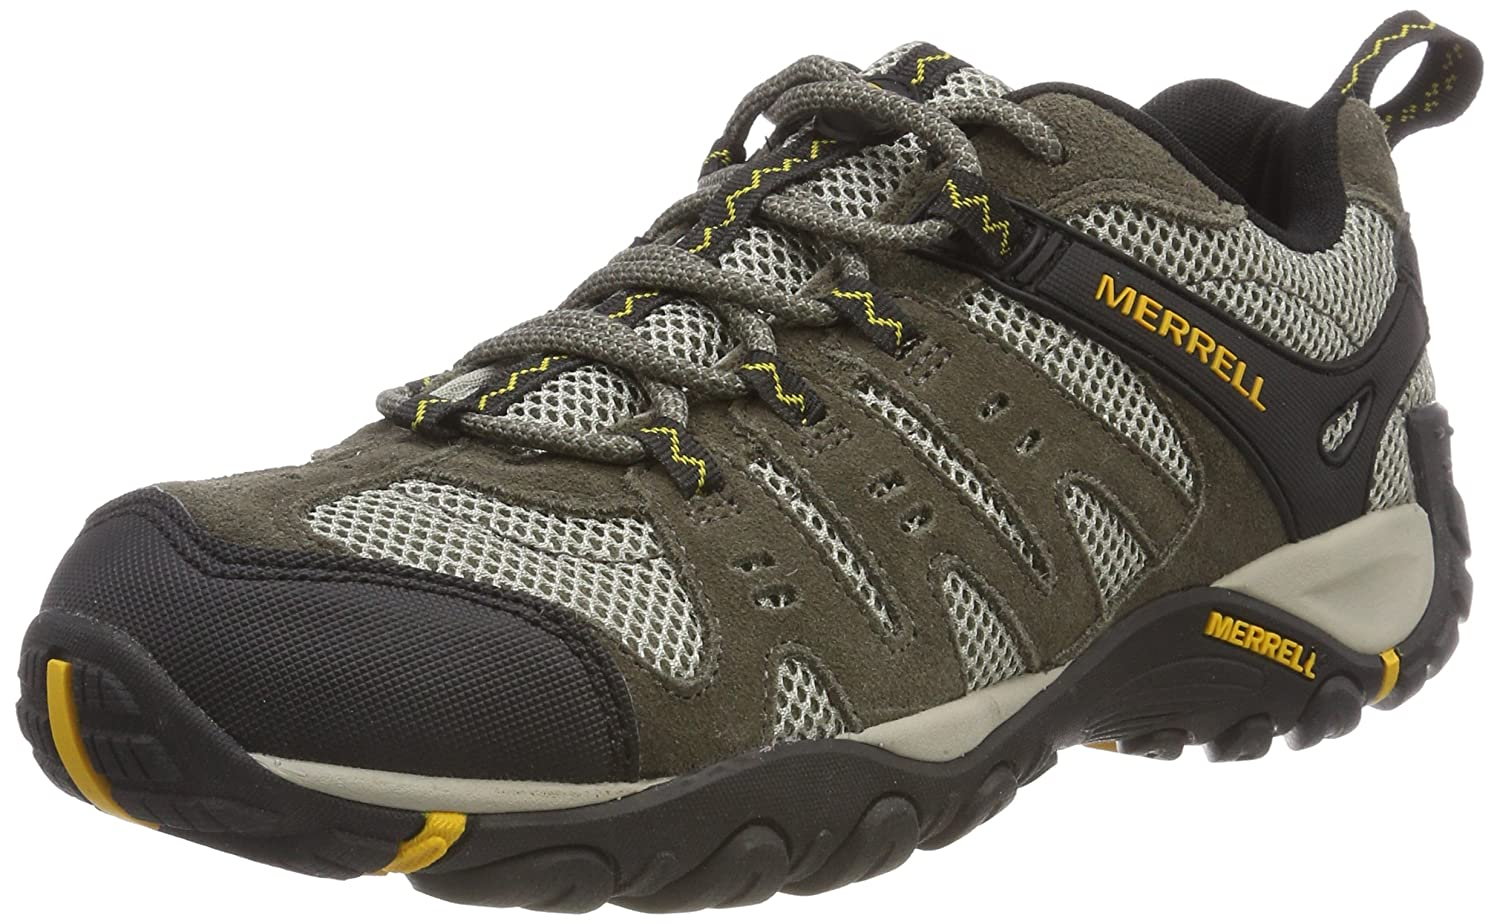 Merrell Merrell Merrell Men's Accentor Hiking Stiefel, Boulder Old Gold, 8 M US ae5cbc